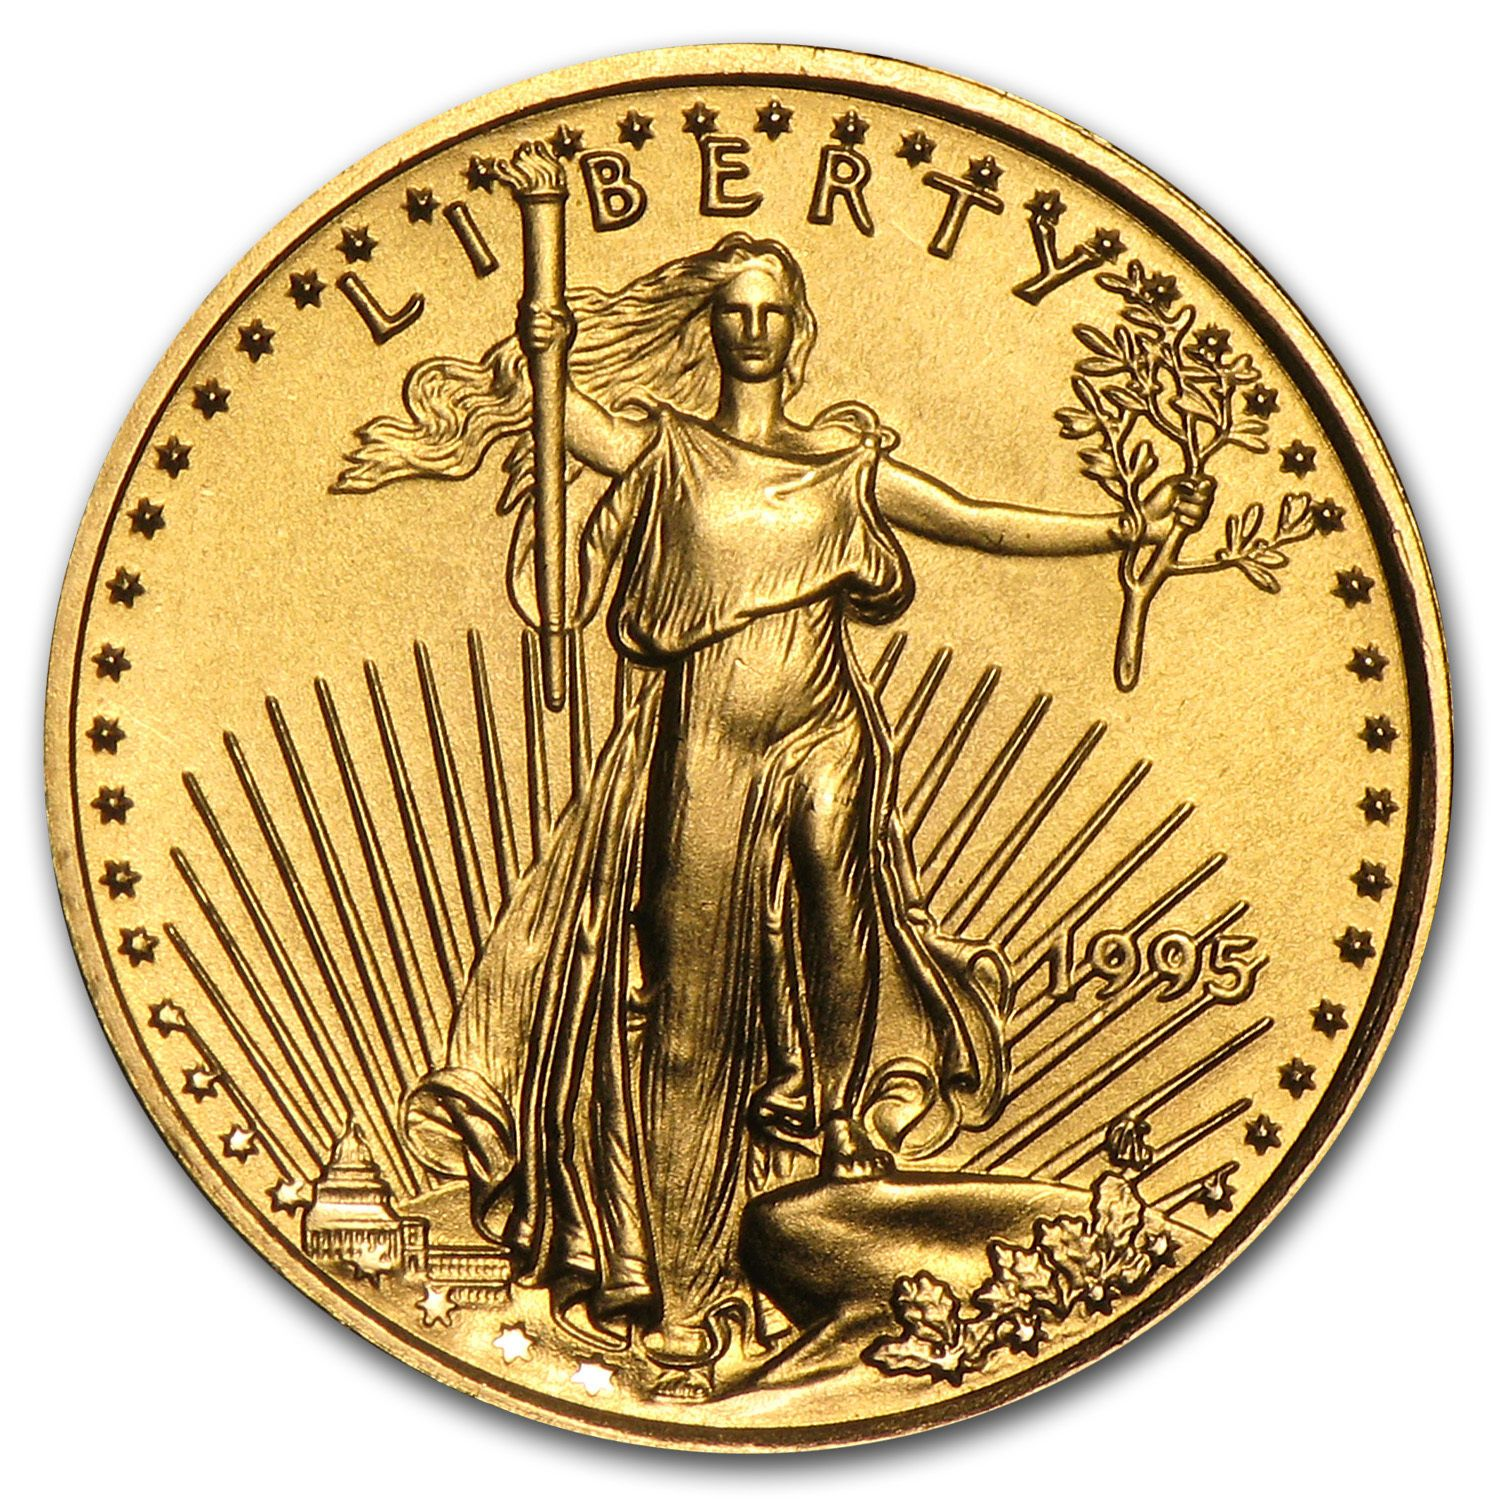 1995 1 10 Oz Gold American Eagle Coin Brilliant Uncirculated Sku 4703 Gold Bullion Coins Gold American Eagle Eagle Coin